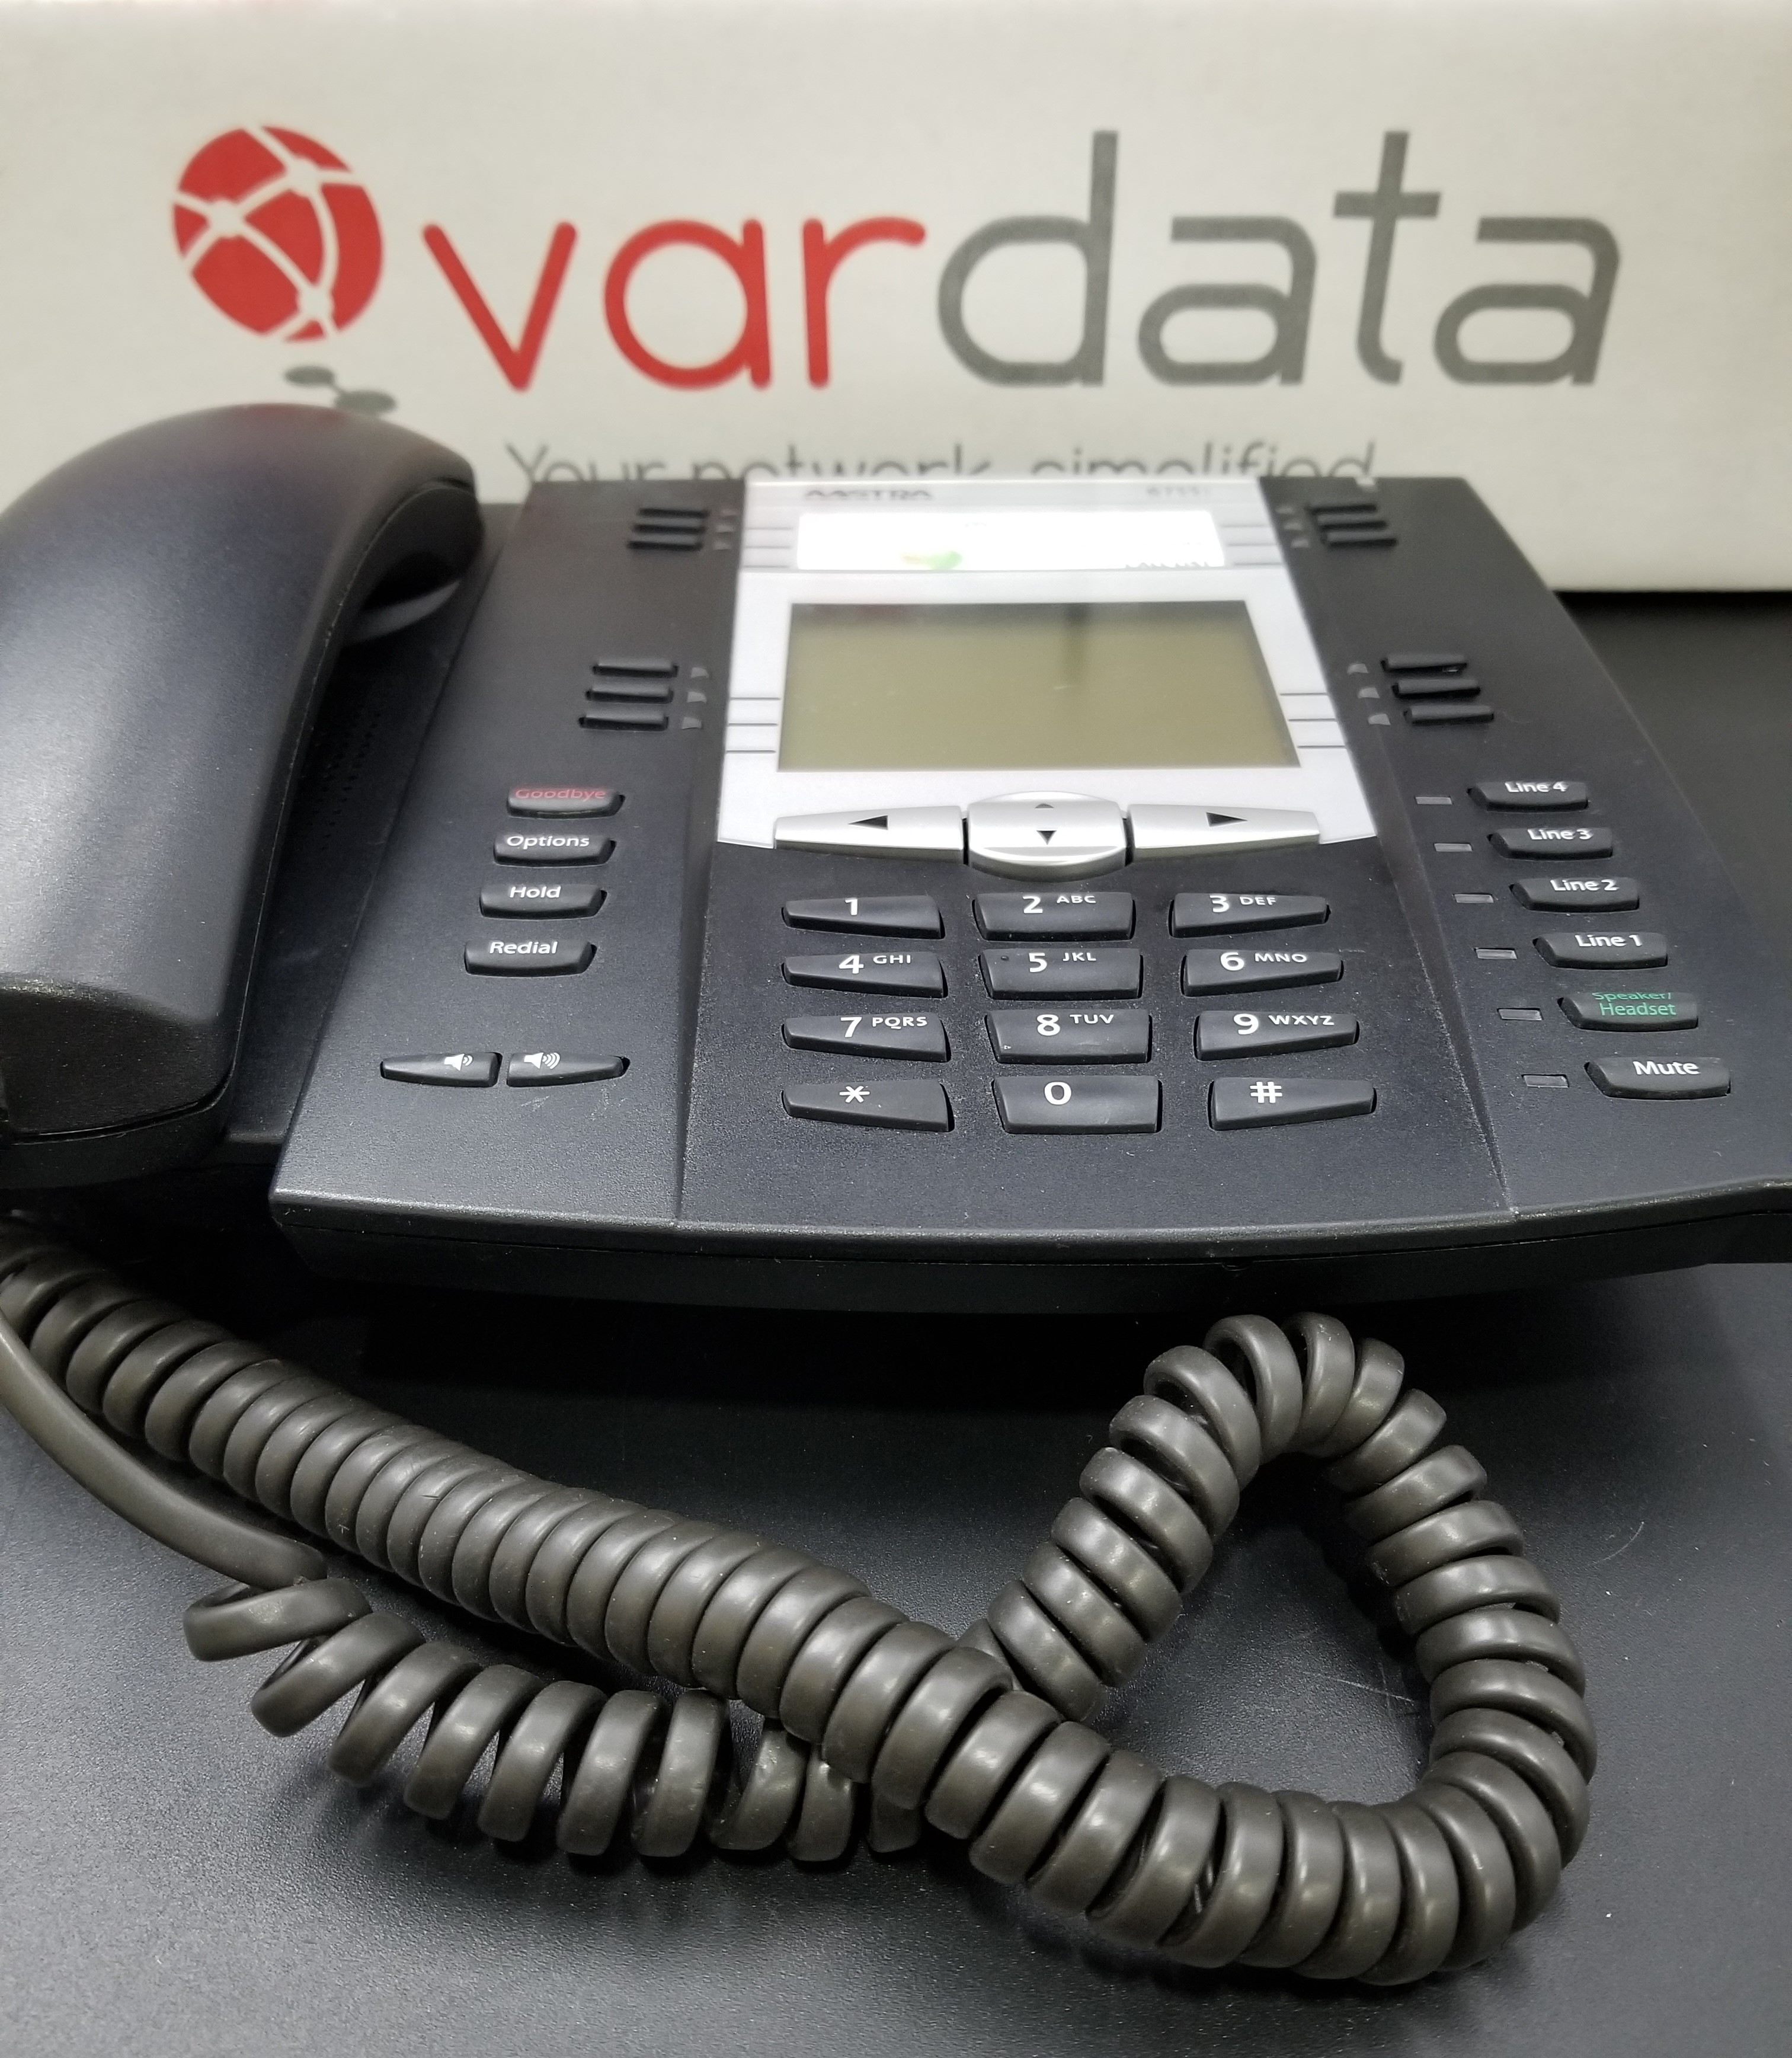 Aastra 6755i SIP Phone A1755-0131-10-01